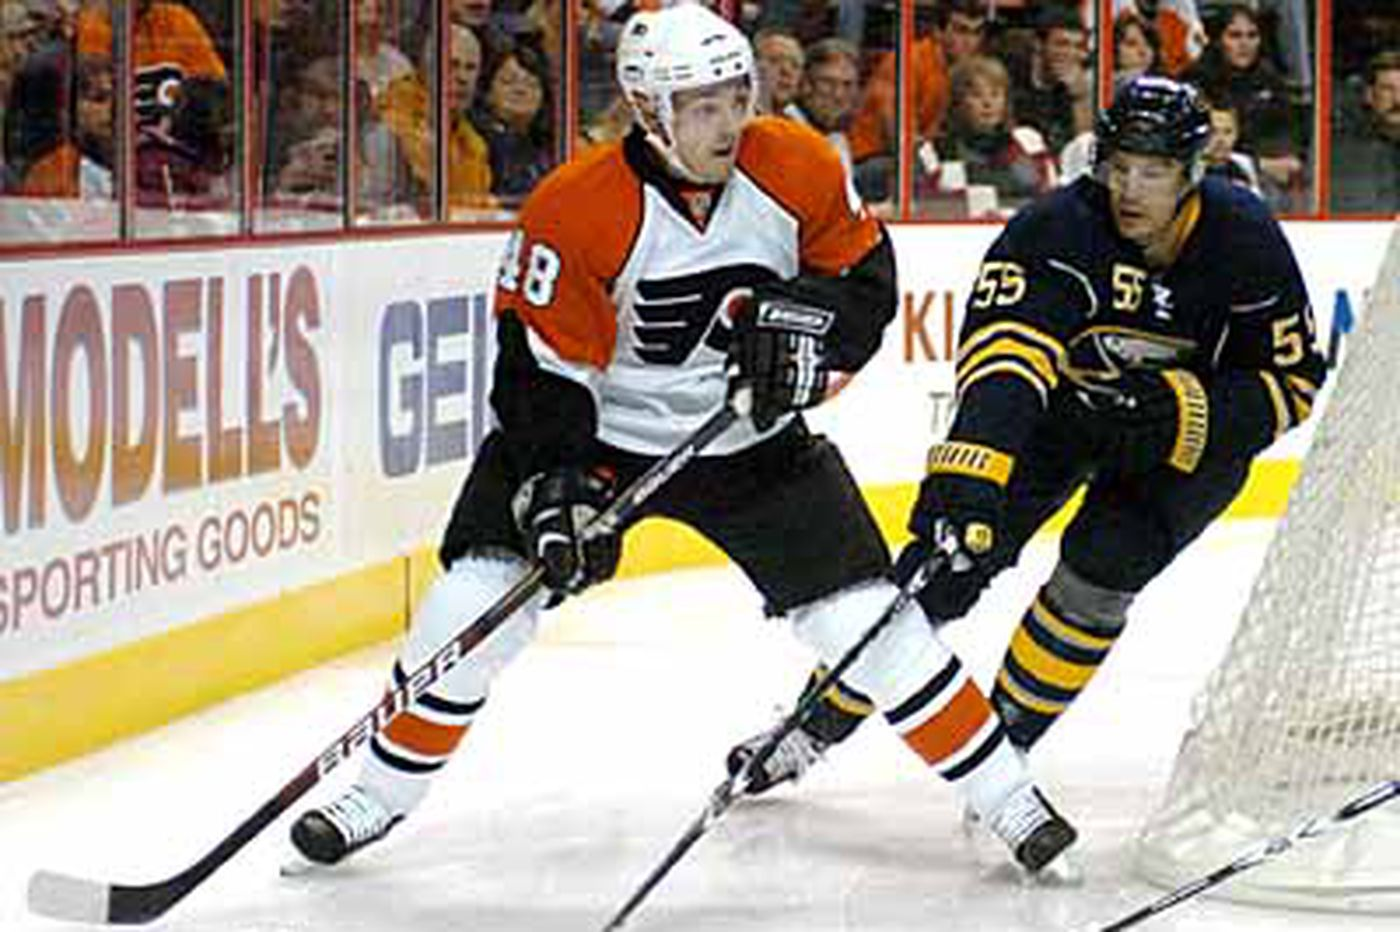 Slumping Flyers welcome Briere's return